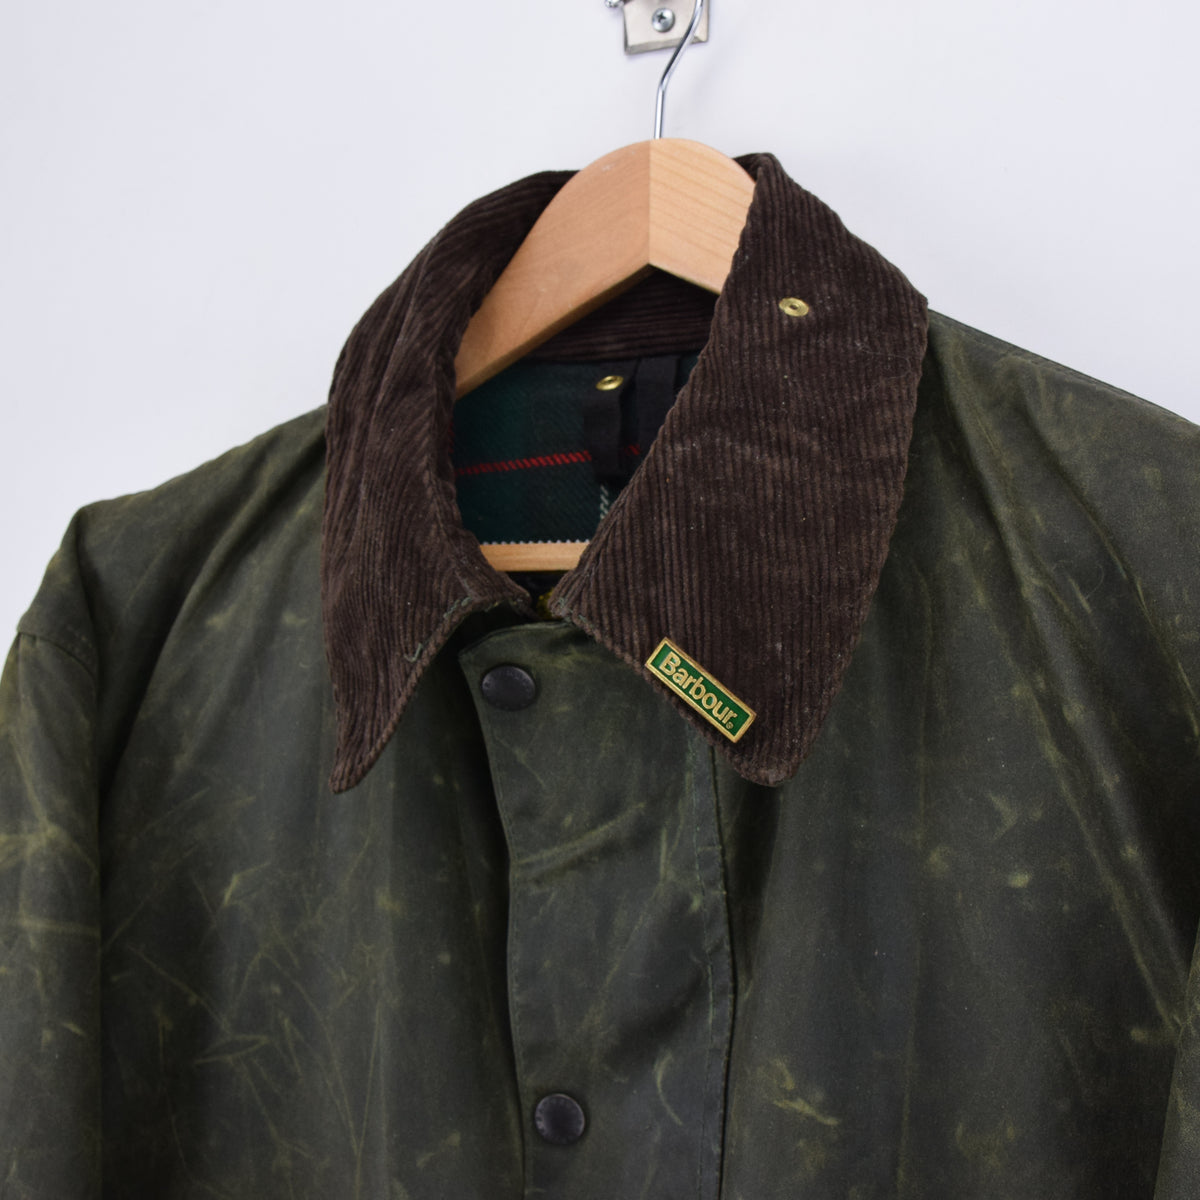 Vintage Barbour A400 Northumbria Green Wax Jacket Coat Made In England XXL collar